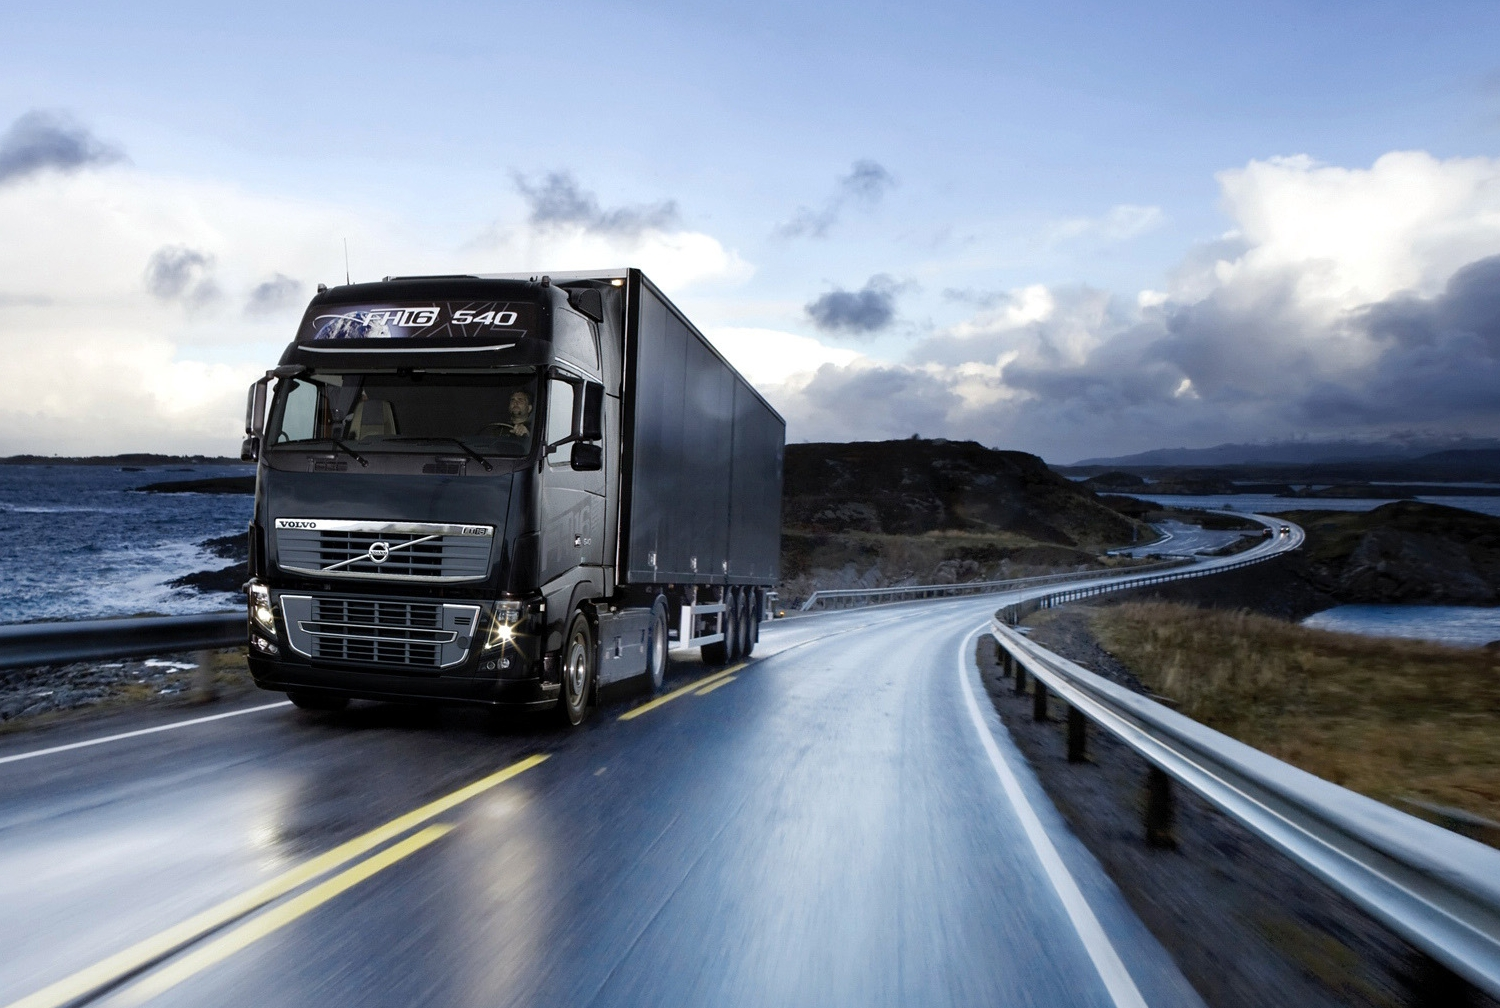 Websites for the Road Haulage Industry